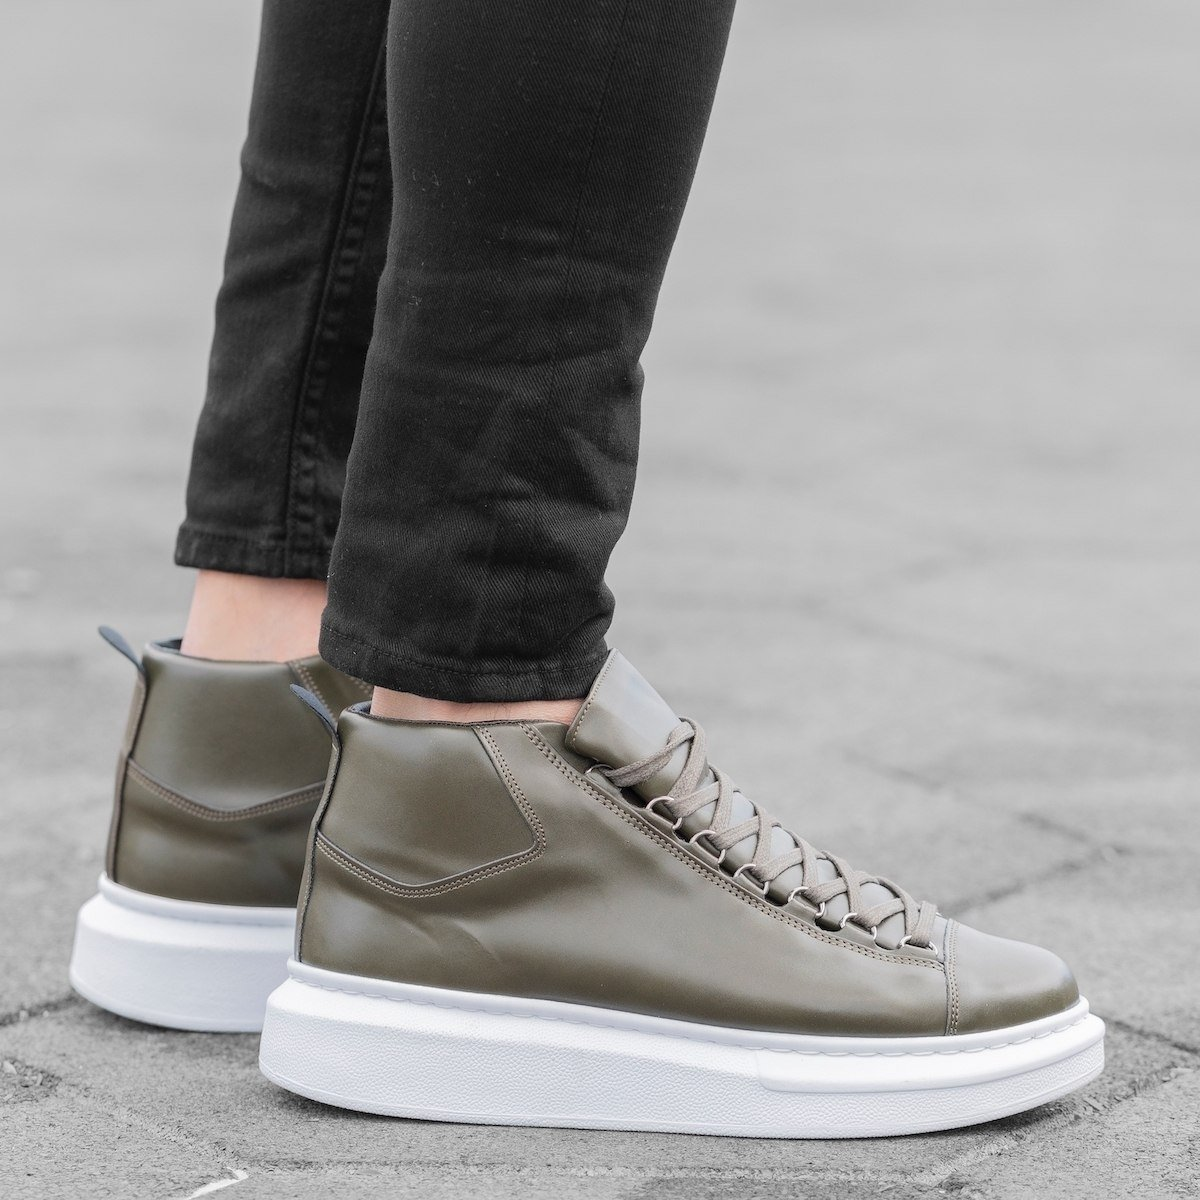 Hype Sole Mox Boots in Khaki